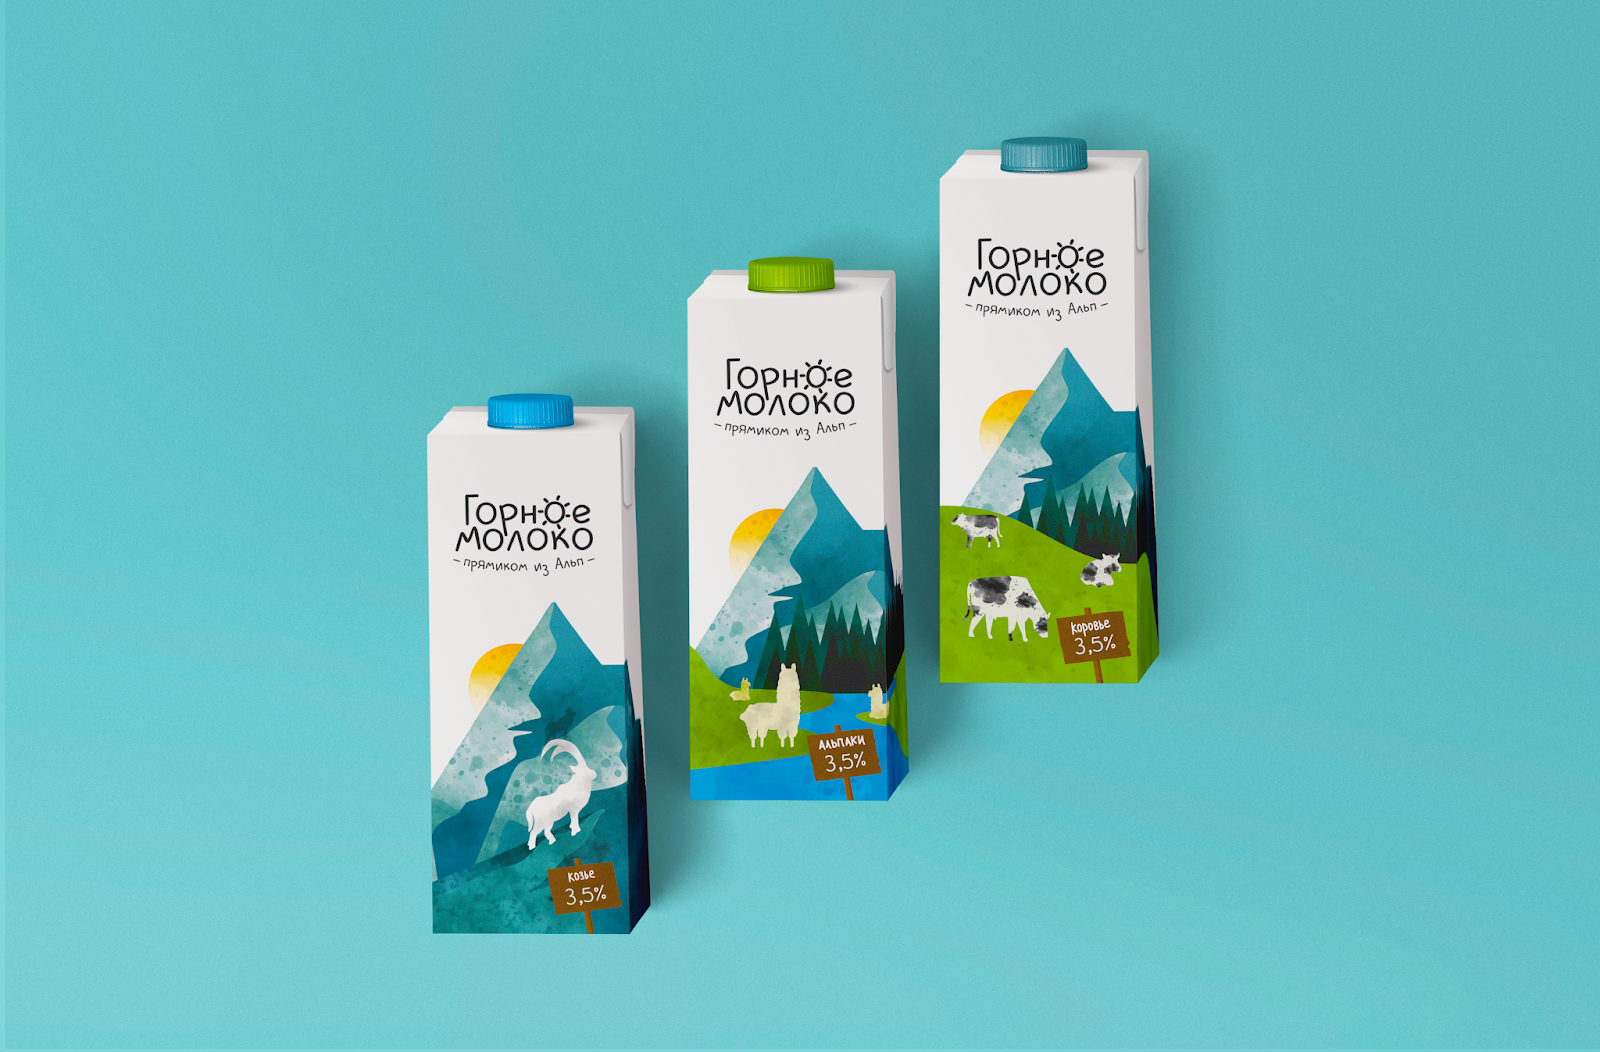 Mountain milk (lait de montagne) I Design (projet étudiant) : Margarita Romanova (HSE Art and Design School), Russie (juillet 2020)